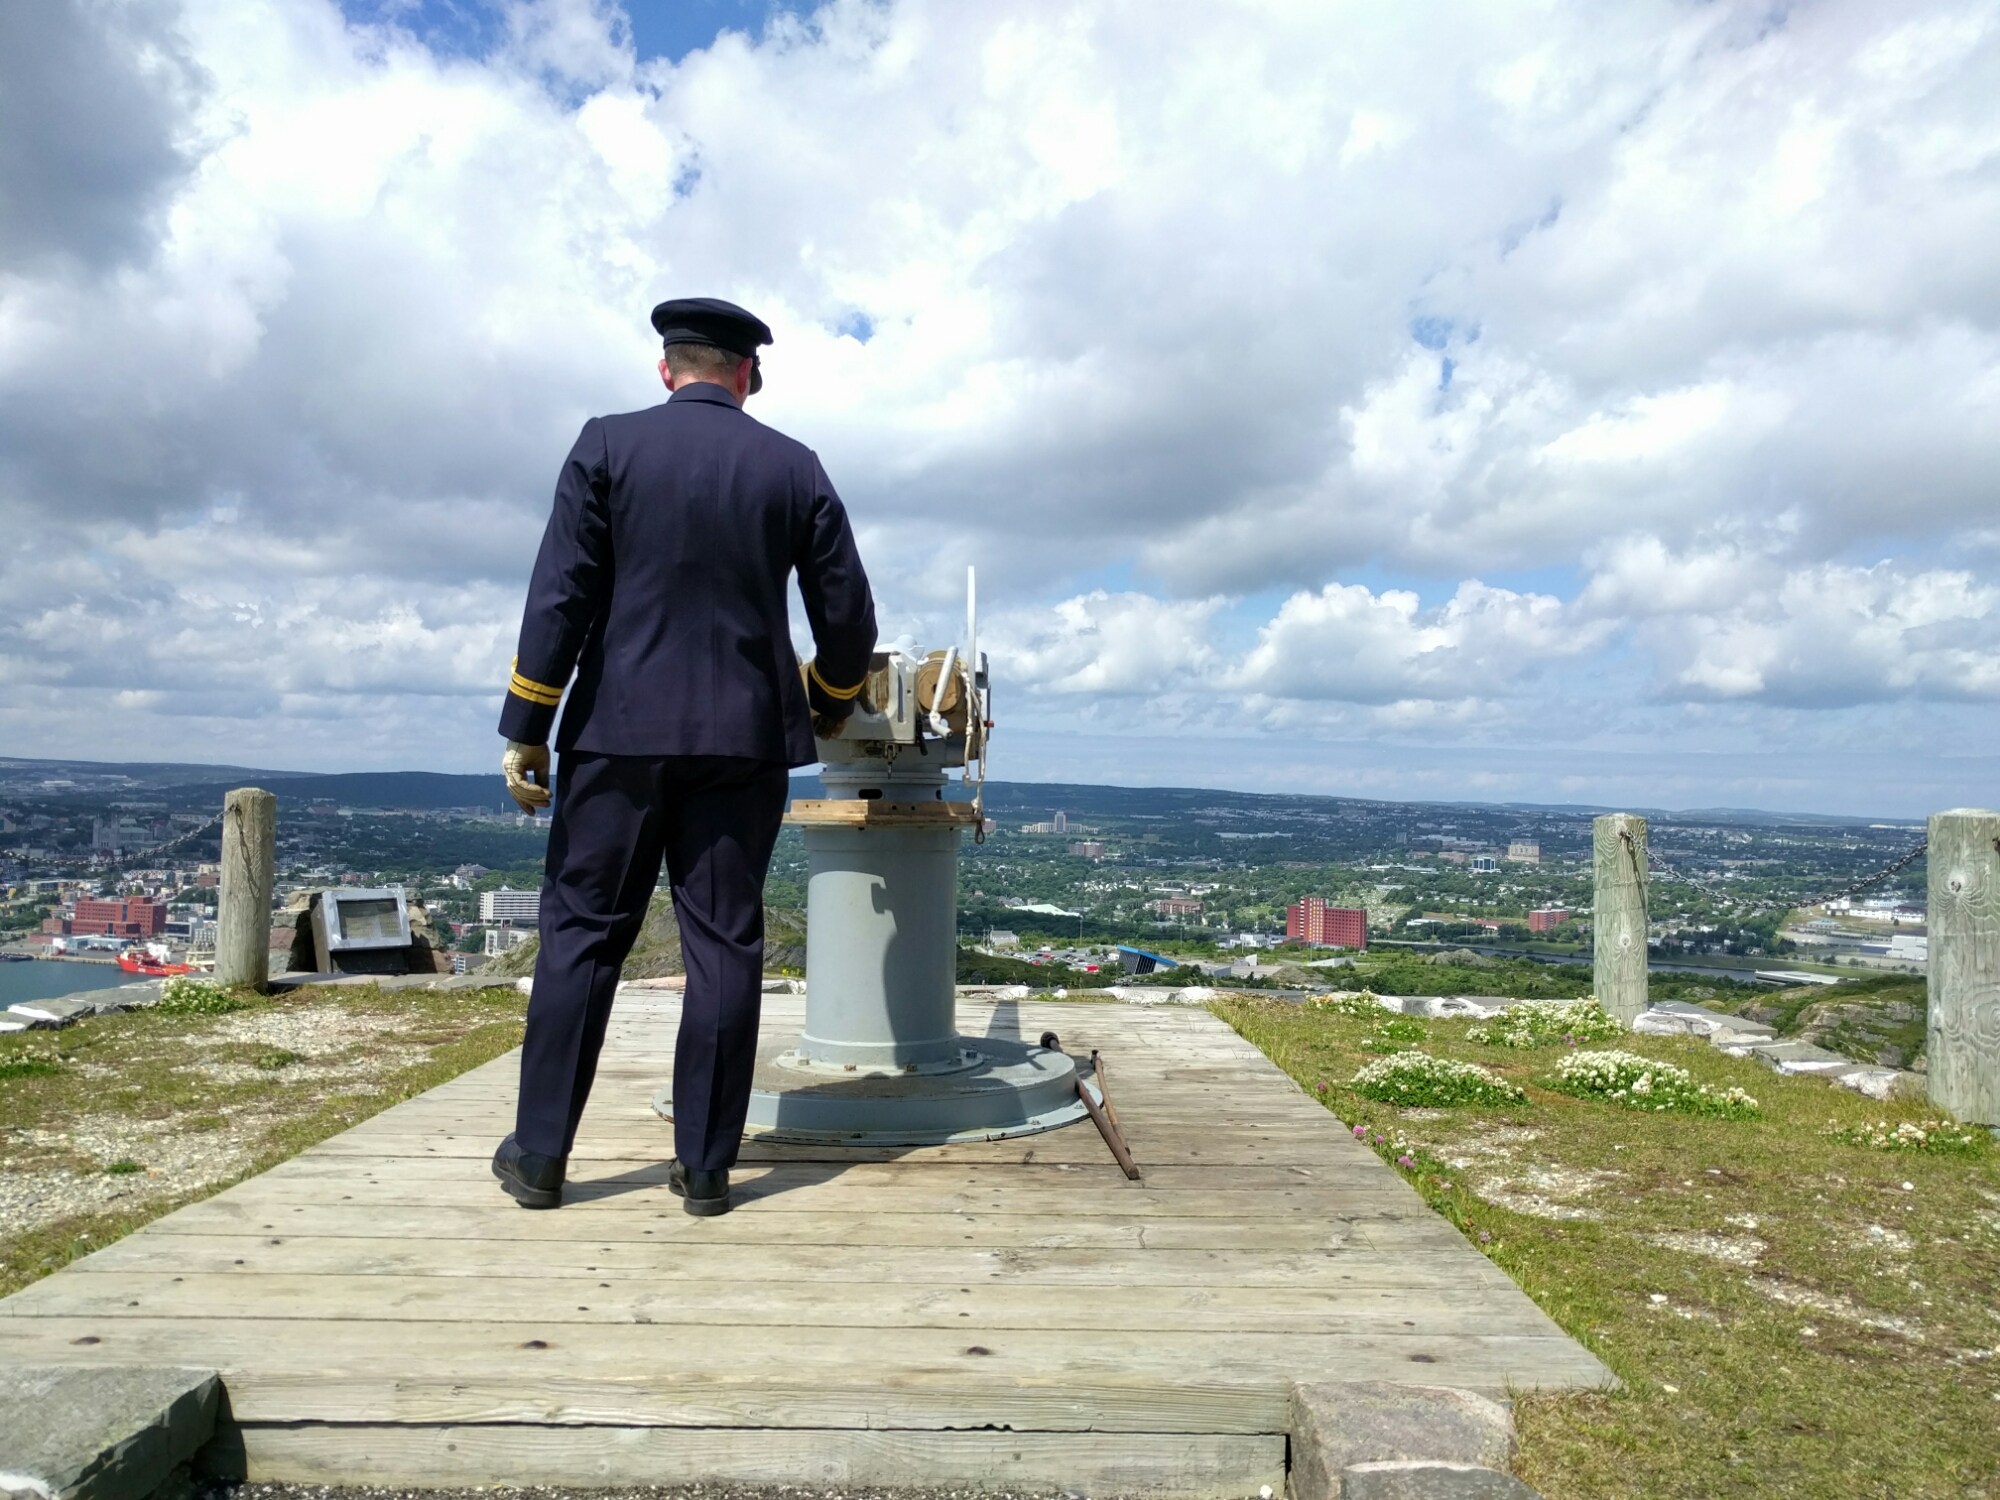 Naval officer fires the noonday gun over St. John's